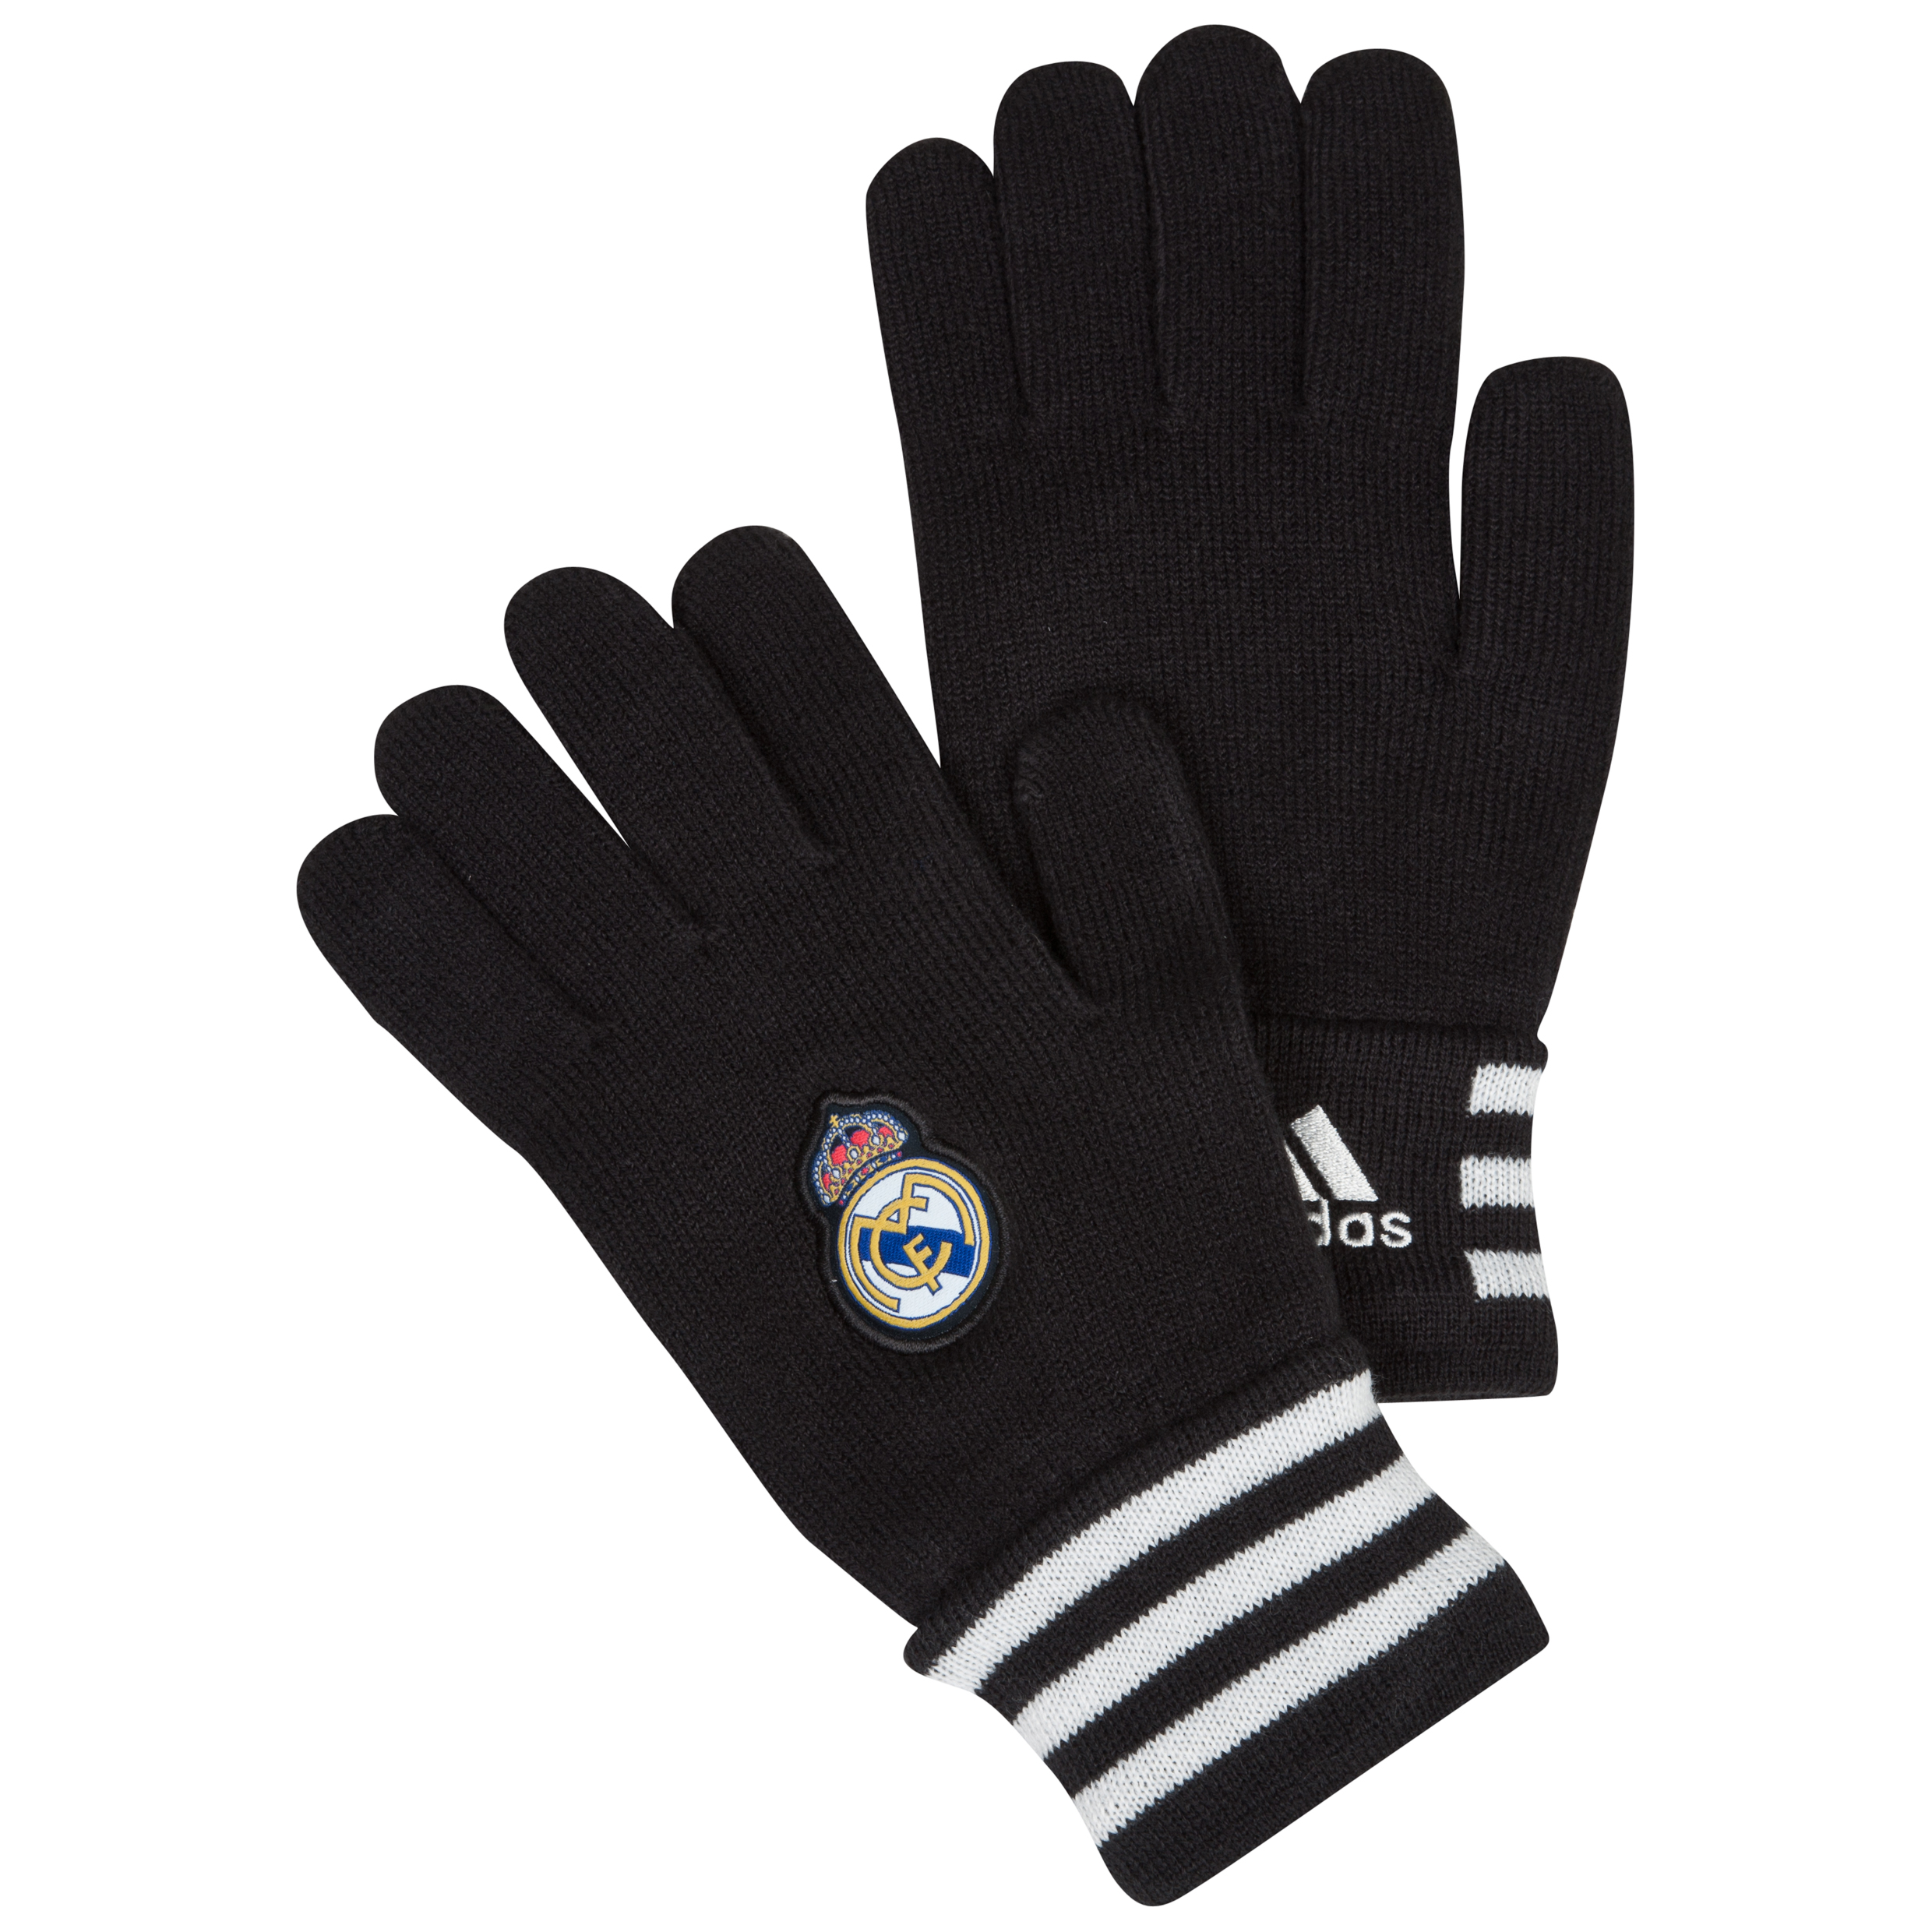 Real Madrid 3 Stripe Gloves - Mens Black